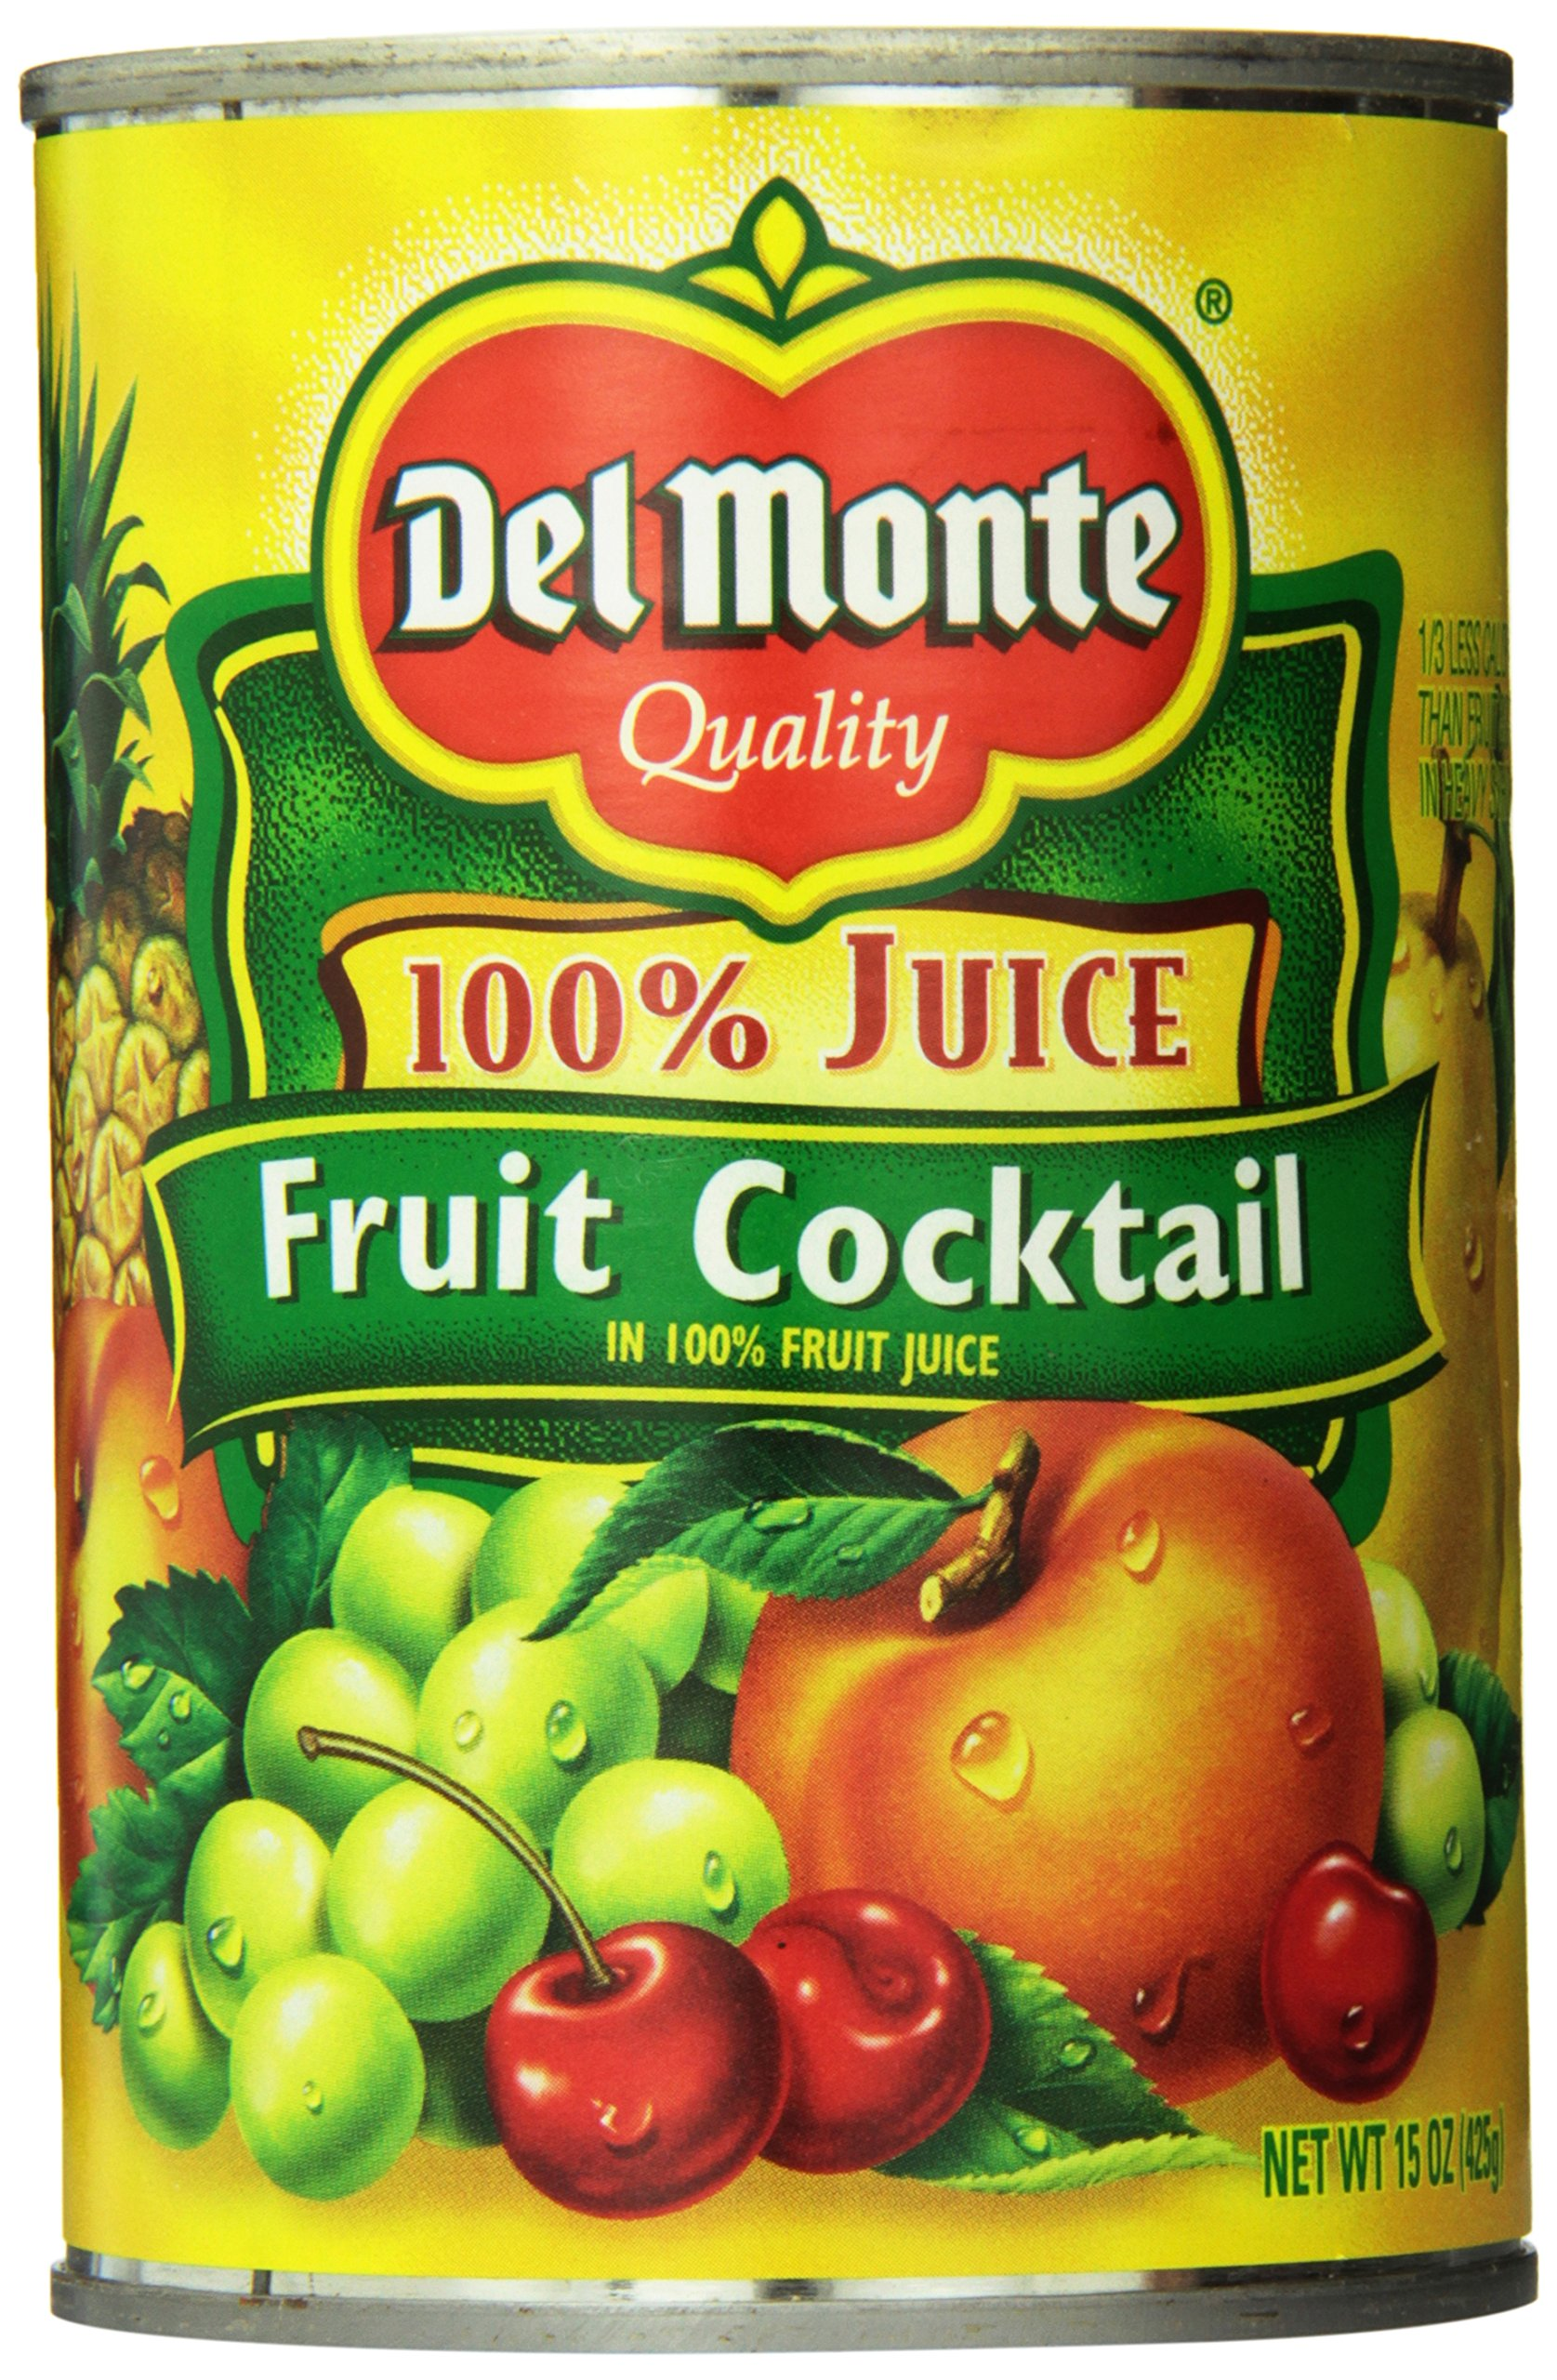 Del Monte Fruit Cocktail Cans, 15 oz, 6 Count